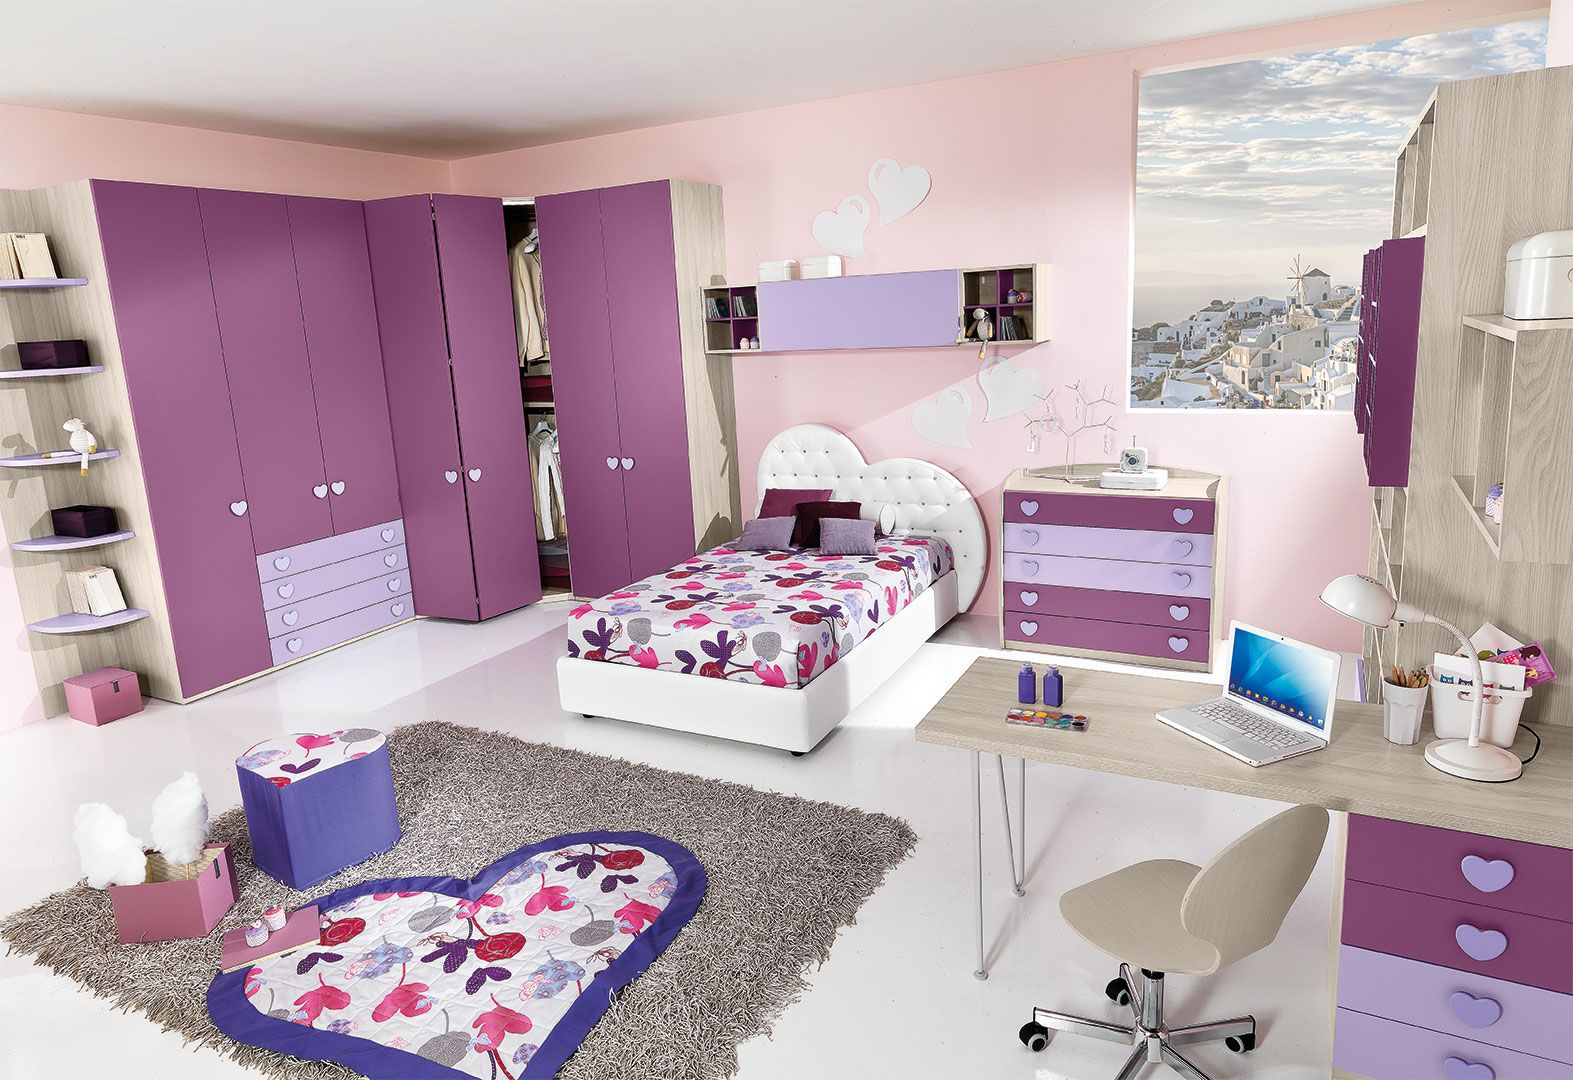 The world of the designer child's bedroom, interpreted